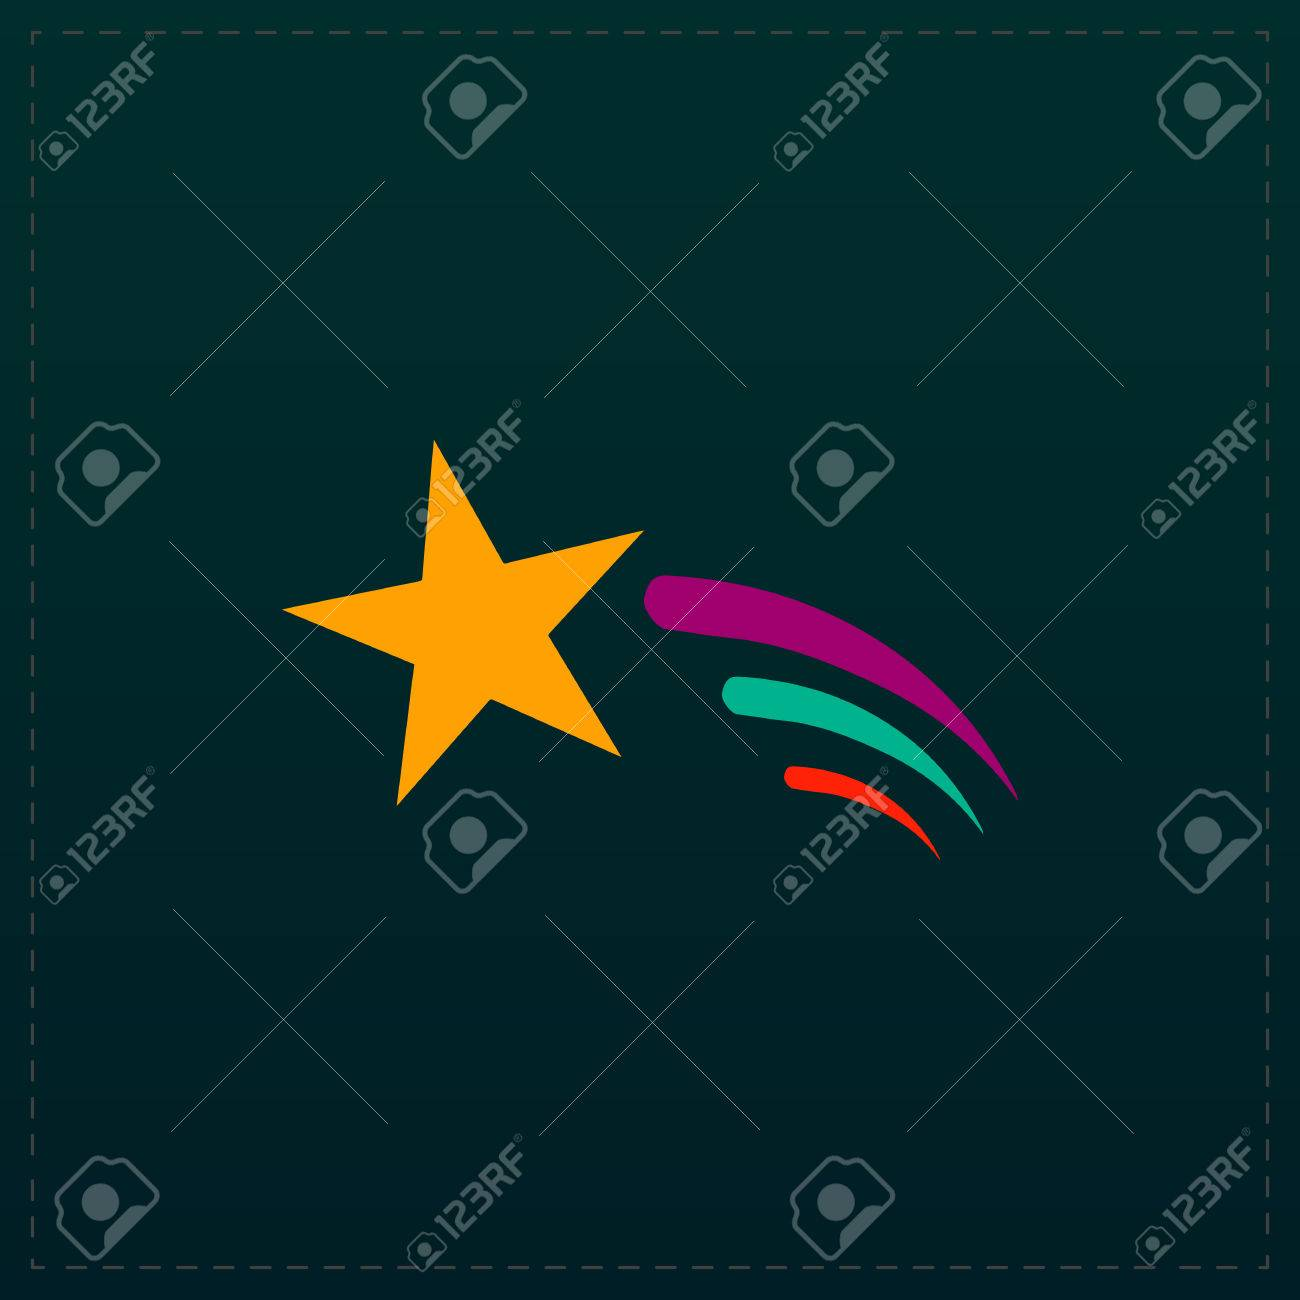 Shooting Star Color Symbol Icon On Black Background Vector